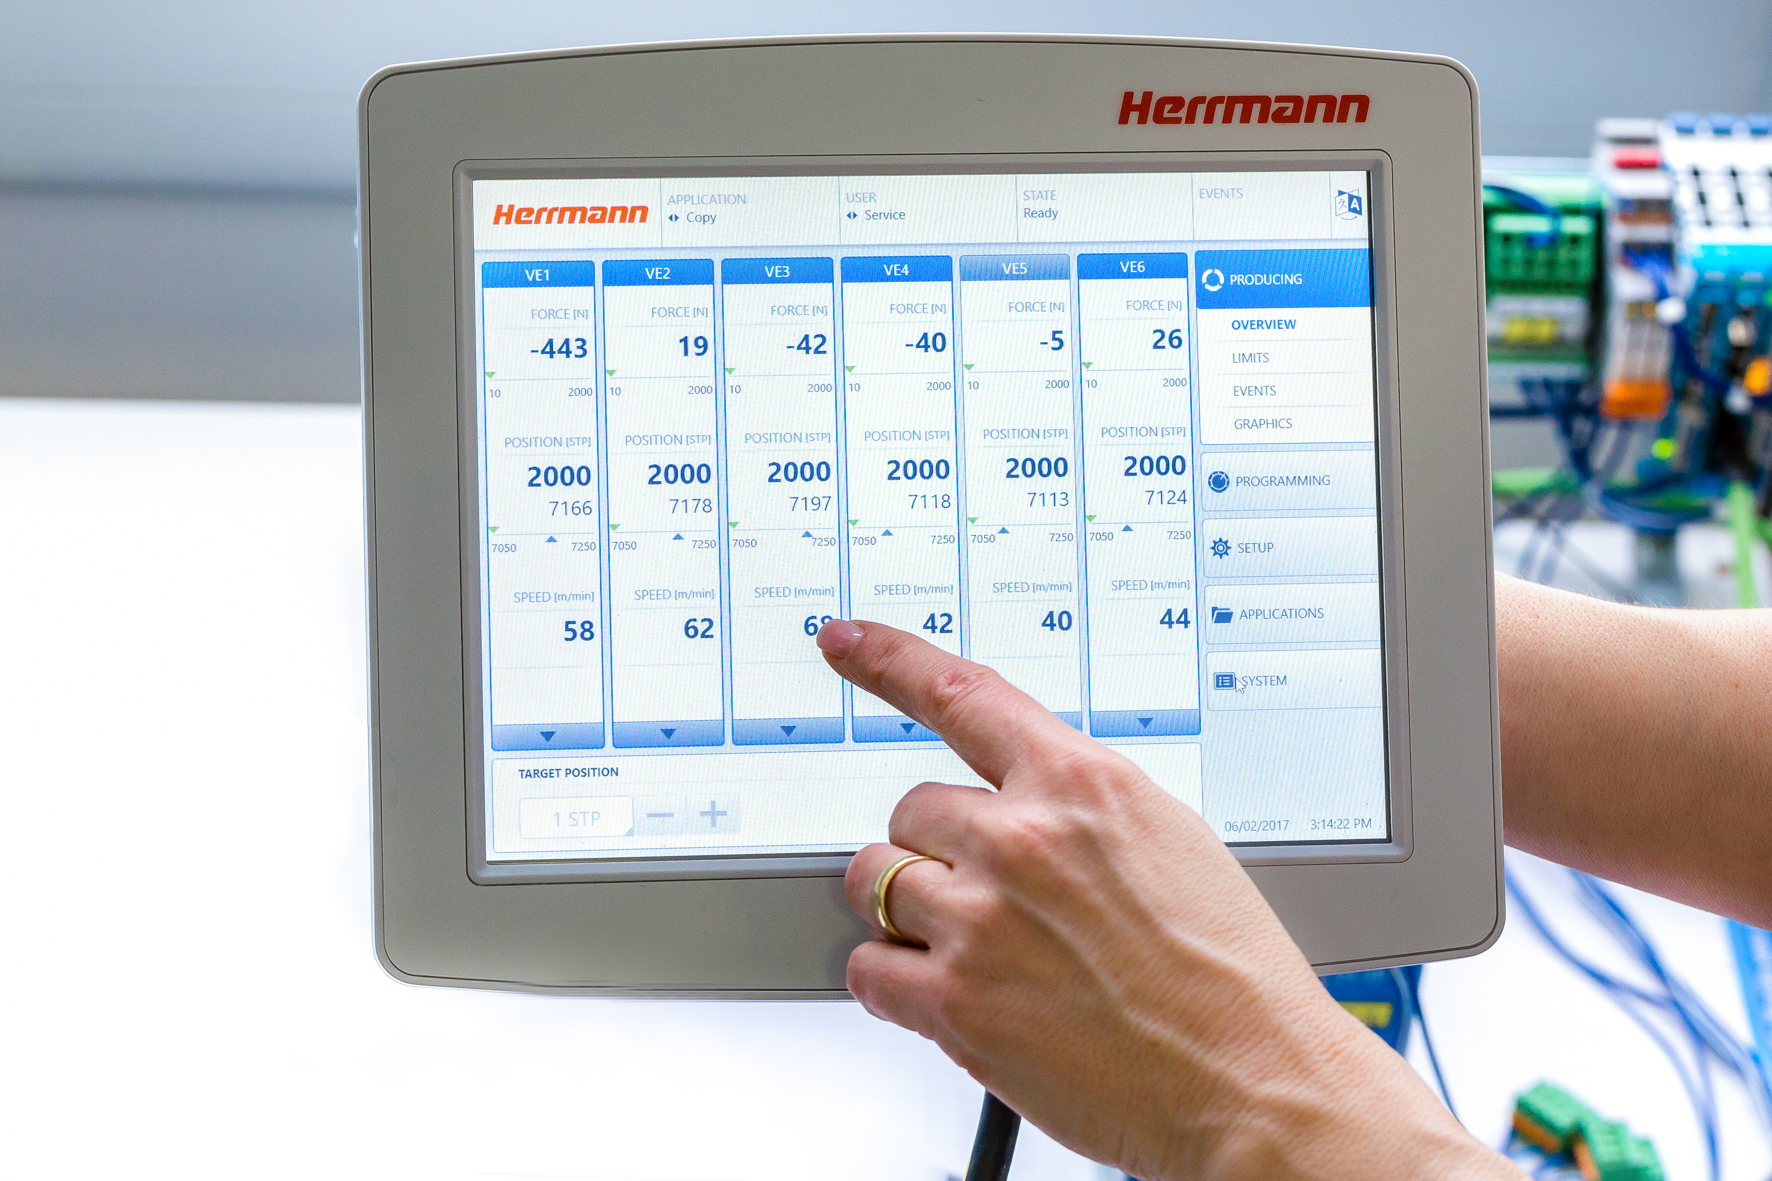 Herrmann Ultraschall's hand-held control panel for easy and safe operation